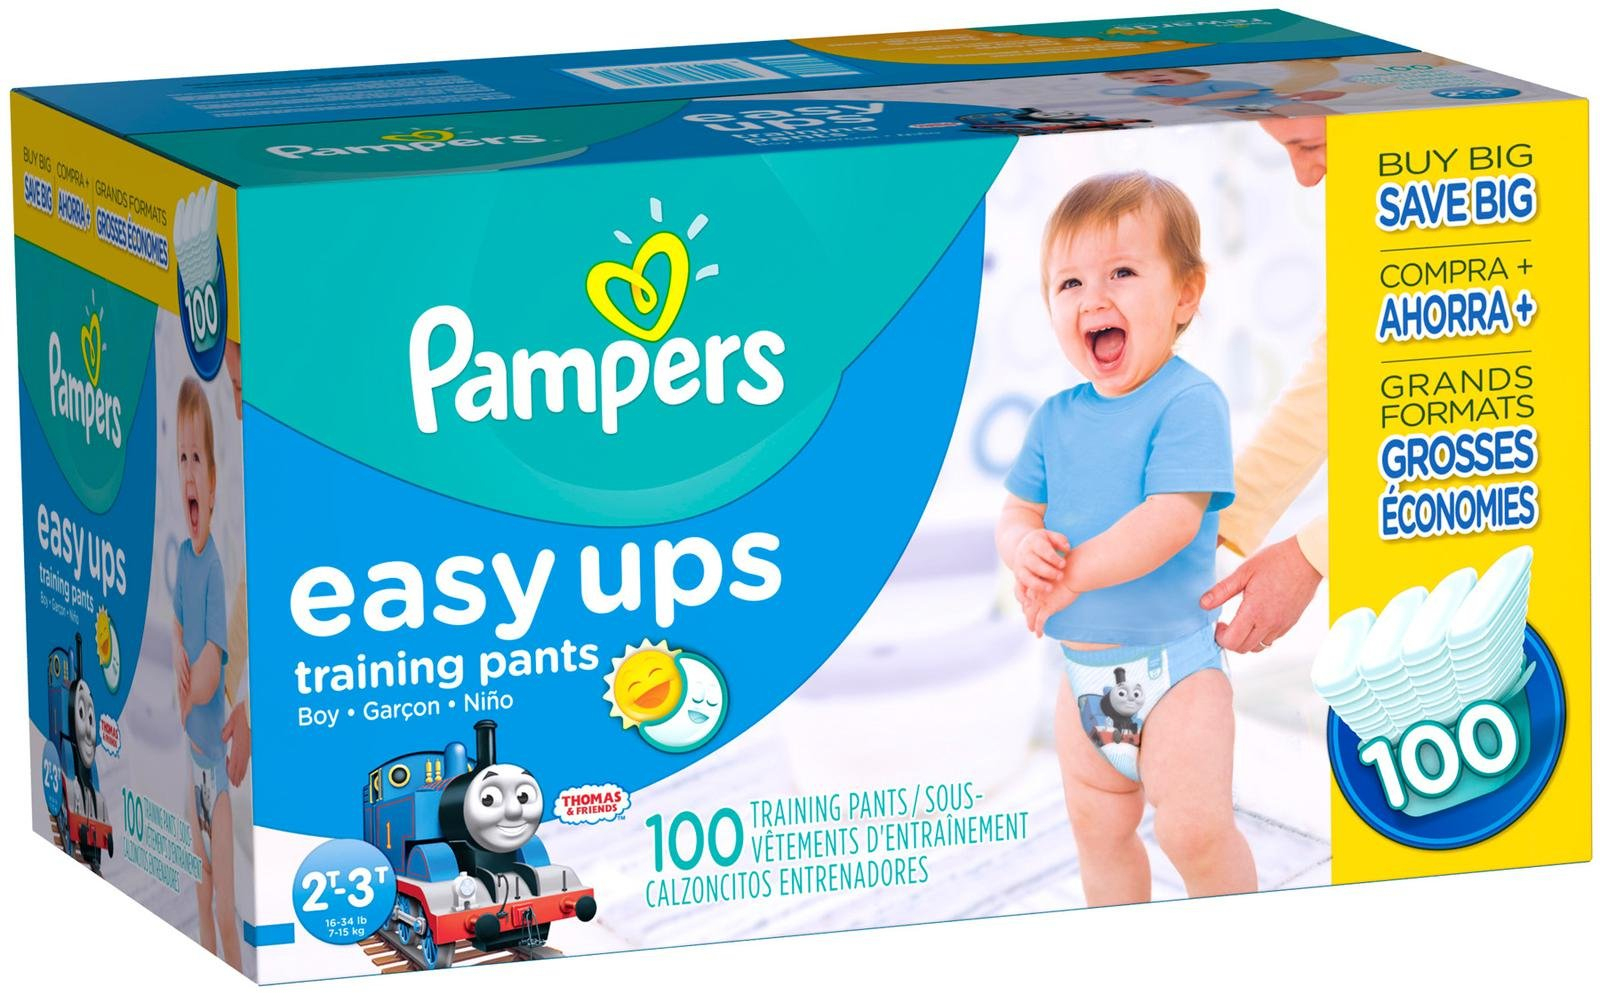 Over $18 In Baby Printable Coupons - - Free Printable Coupons For Pampers Pull Ups